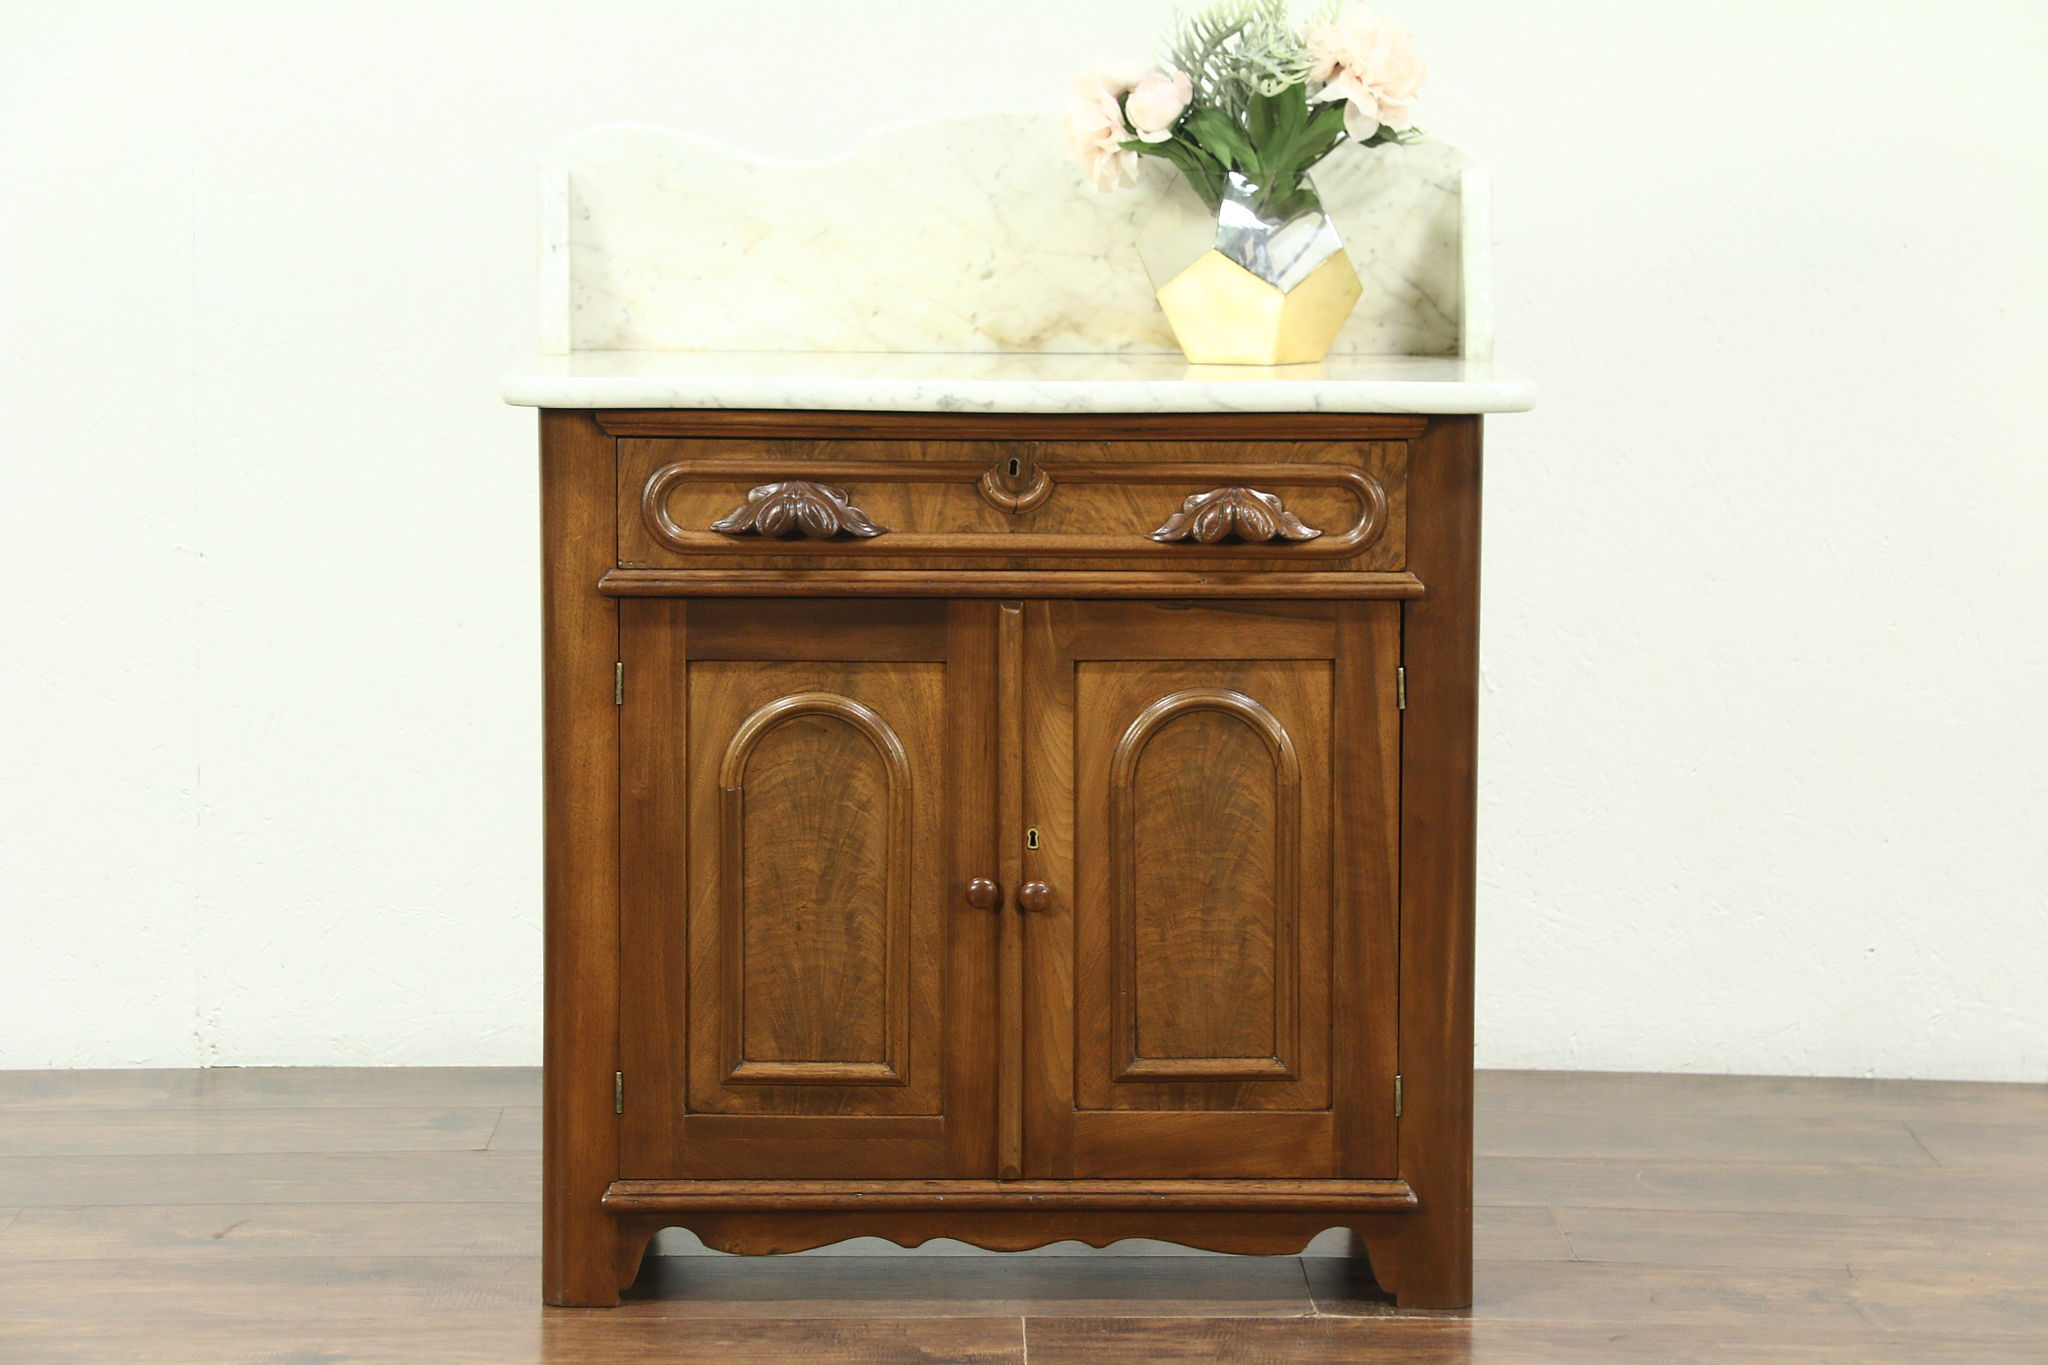 victorian antique 1860's walnut marble top small chest, commode or Marble Top Nightstand